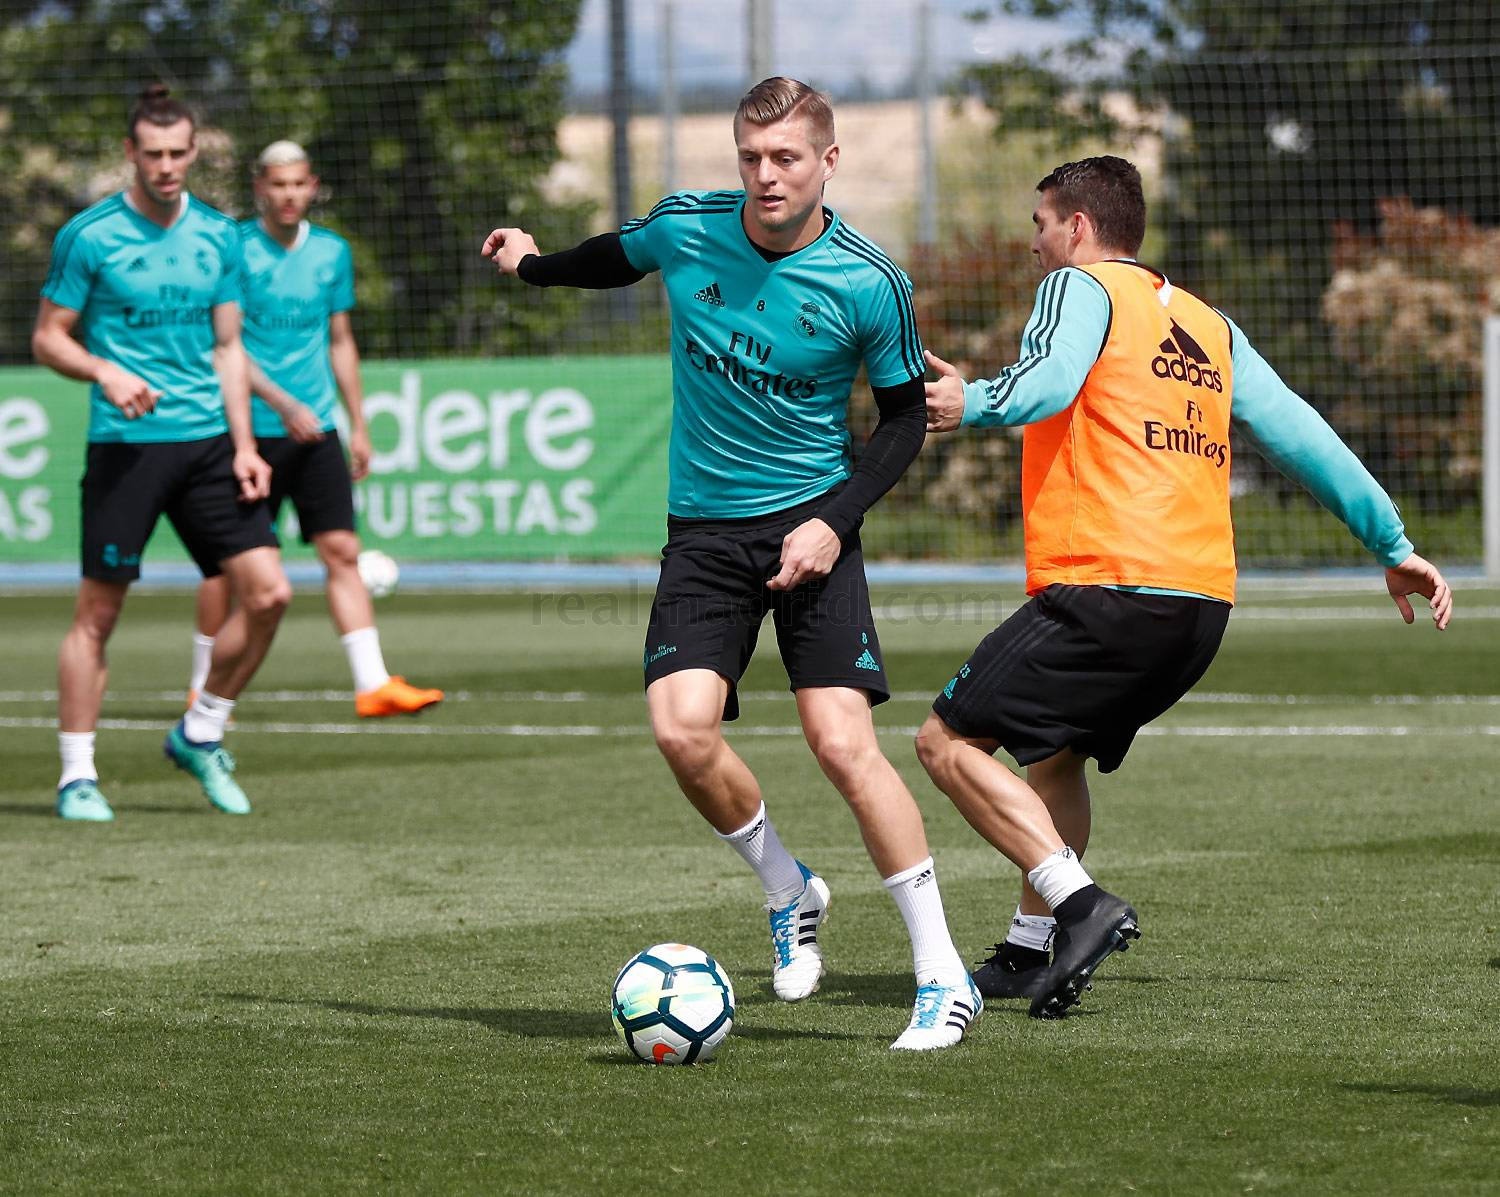 Real Madrid - Entrenamiento del Real Madrid - 03-05-2018